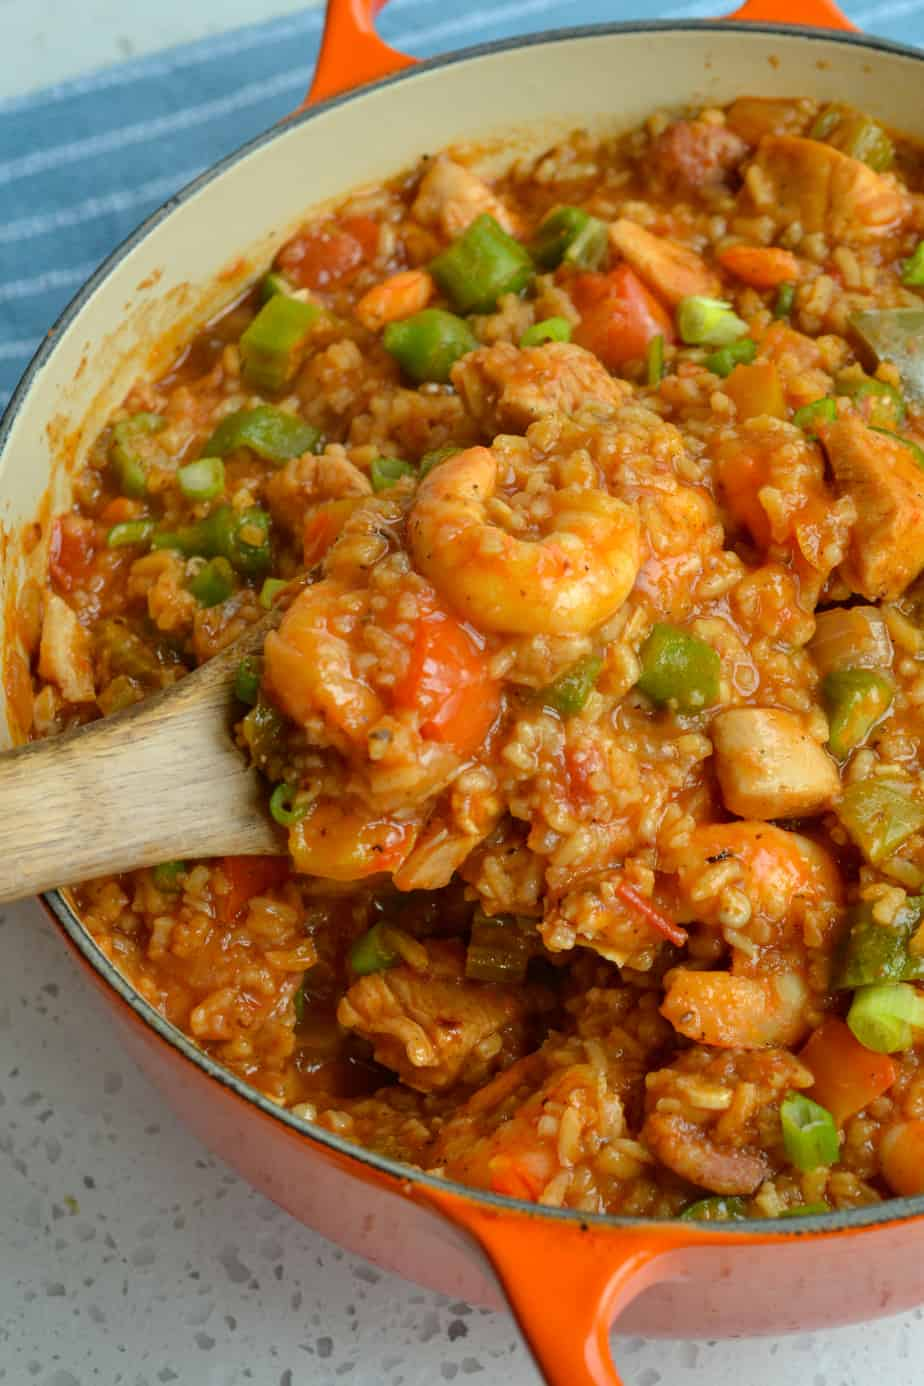 The creole mixed jambalaya includes shrimp and tomatoes.